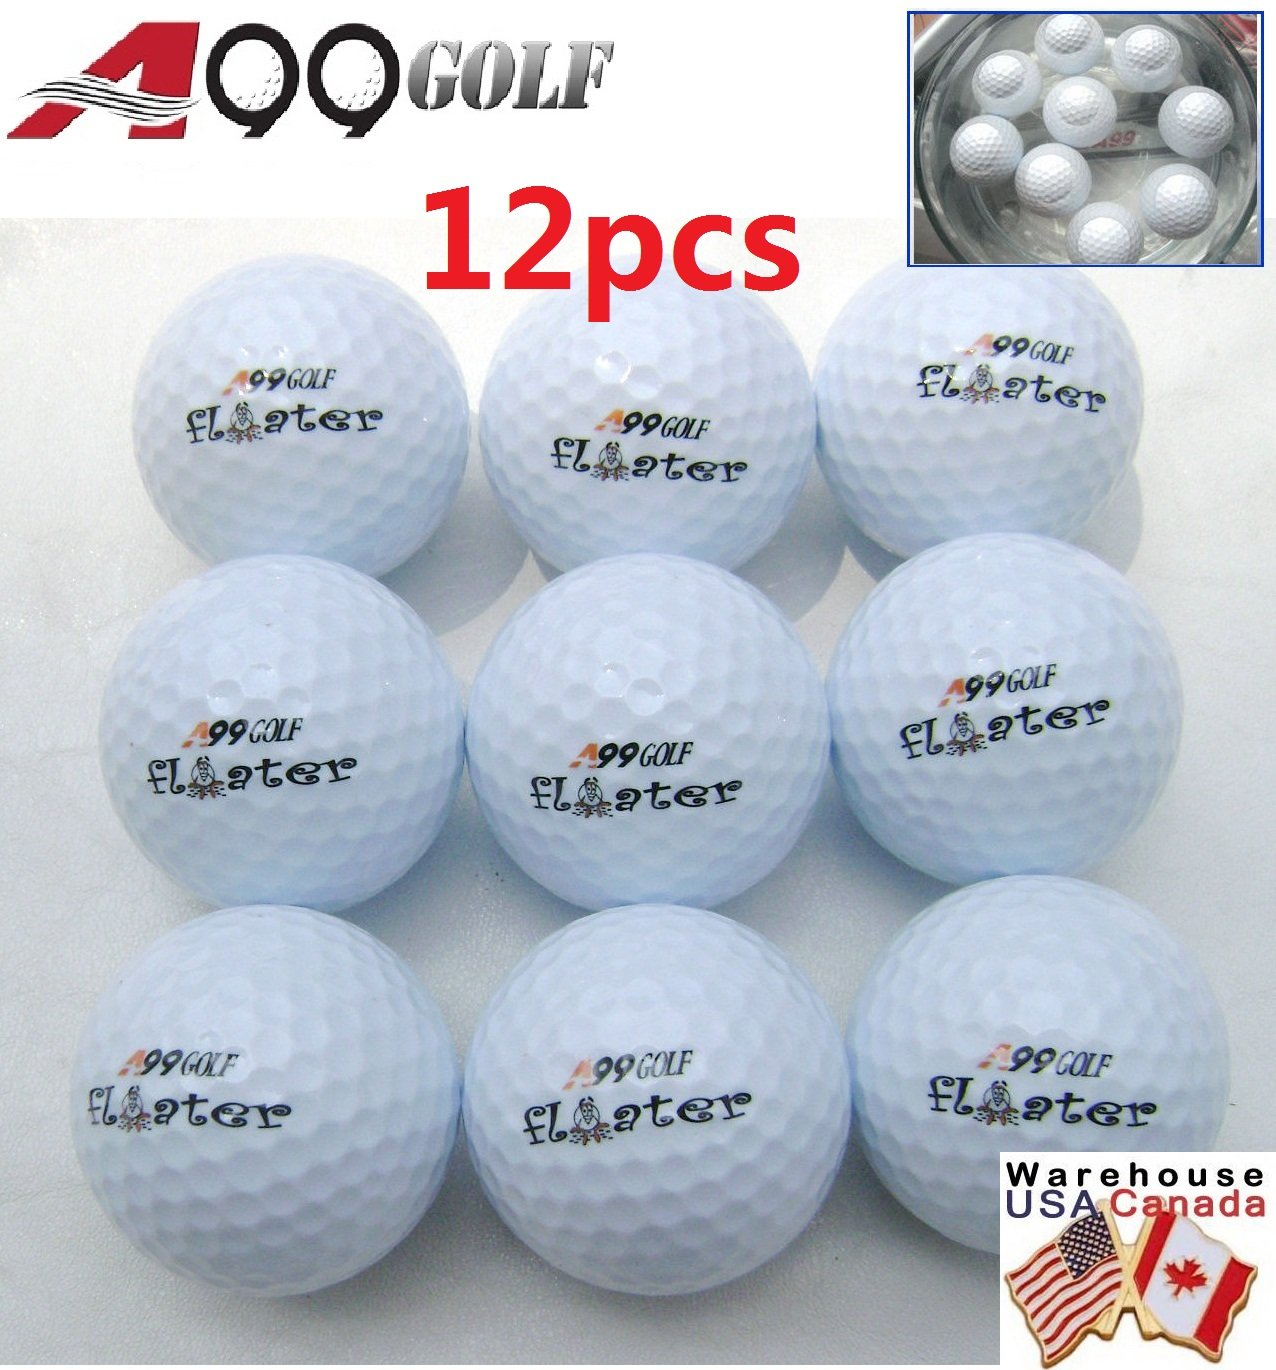 12pcs Golf floater balls floating Practice aid (with logo) by A99 Golf (Image #1)